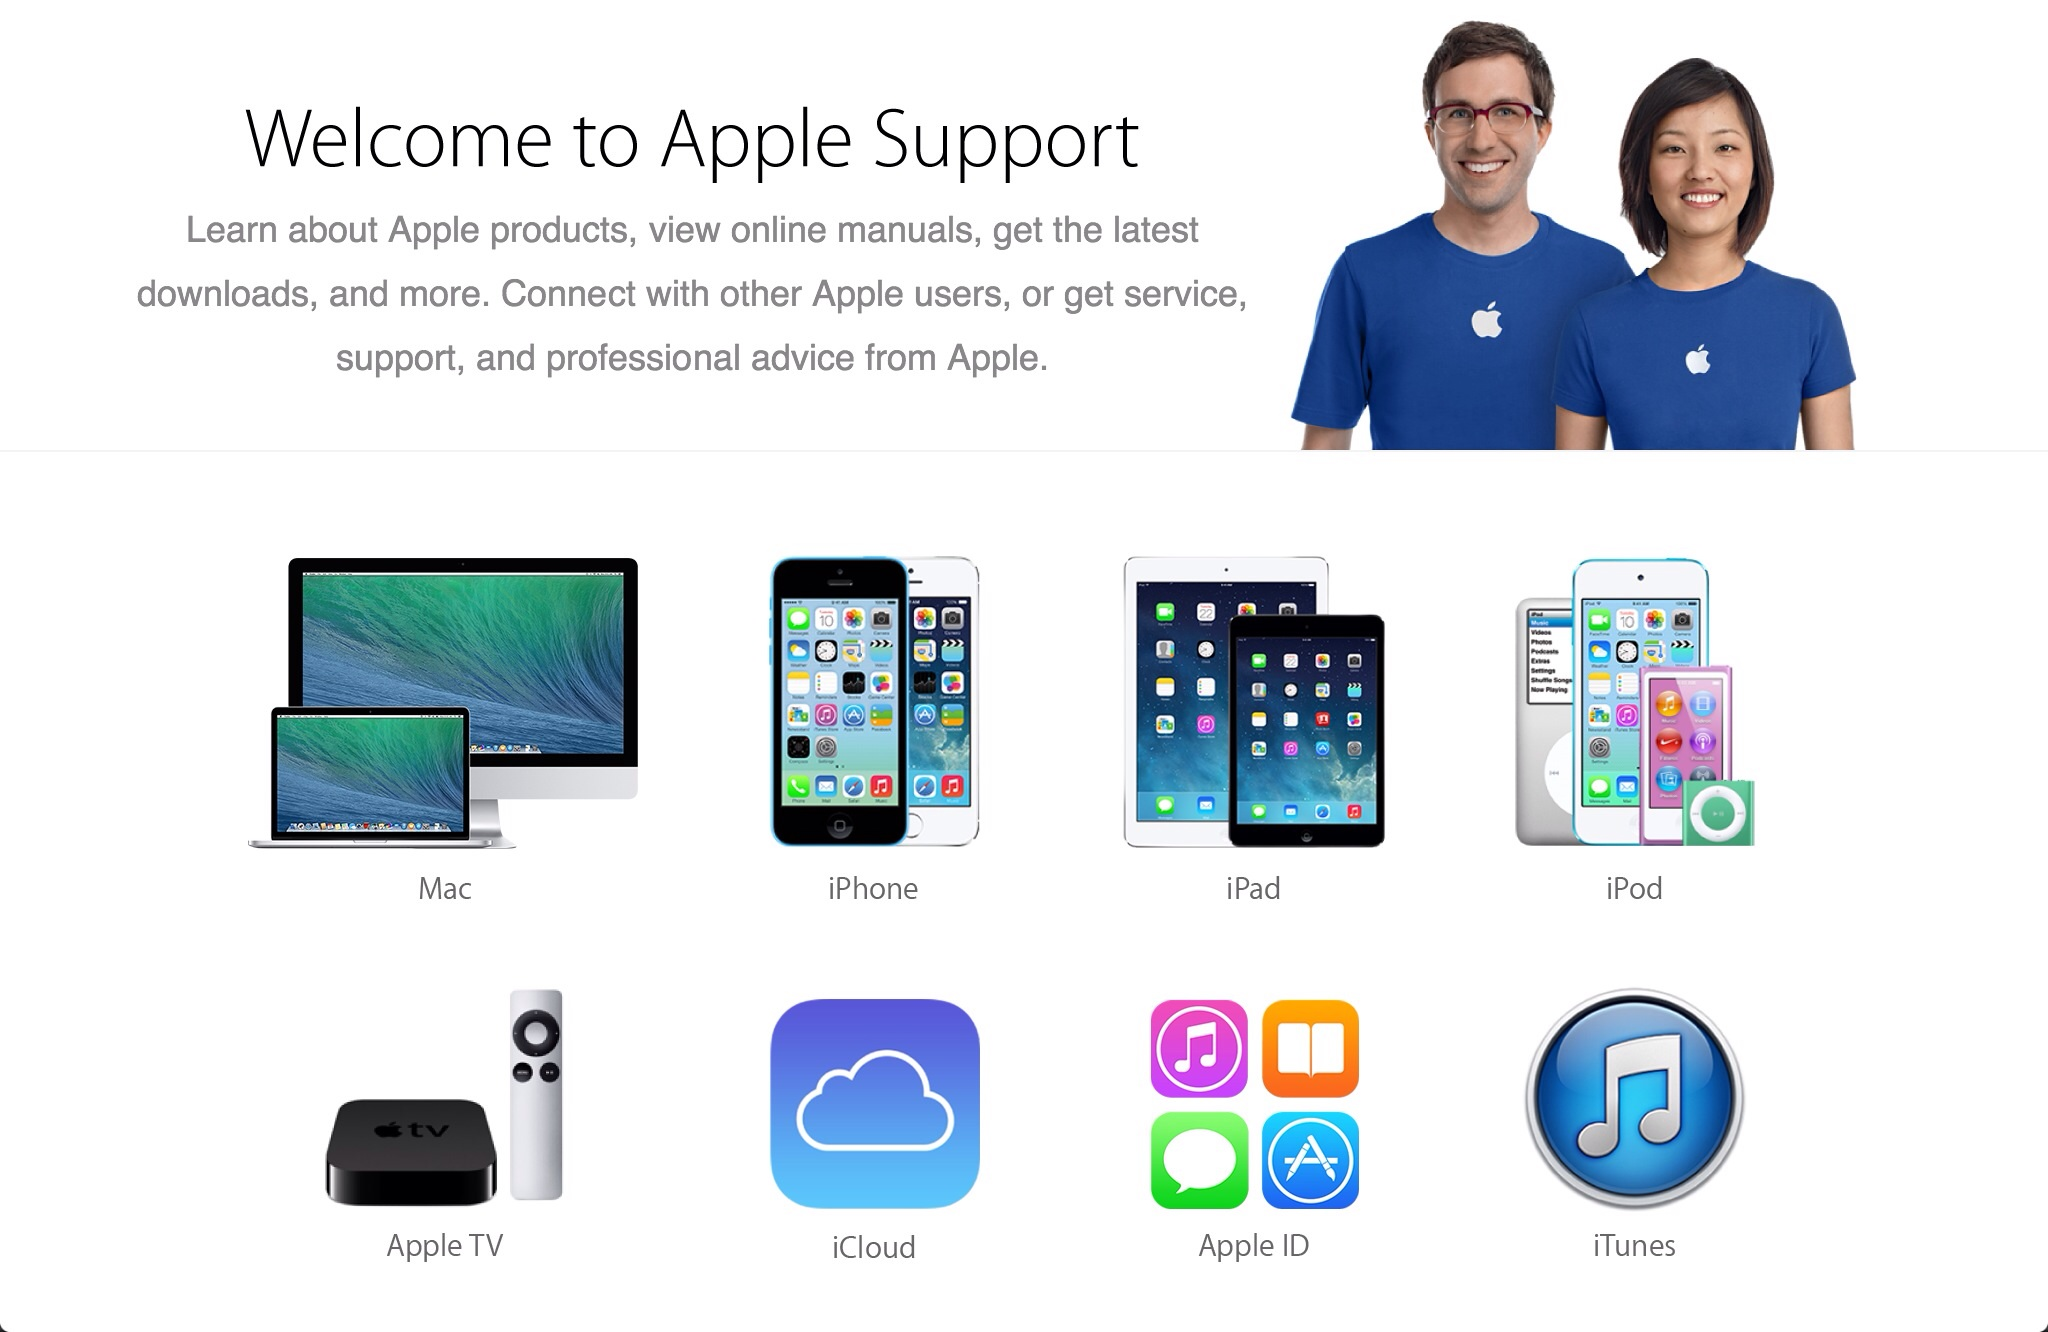 Apple Updates Its Apple Support Website, Adds A More Minimalistic Design